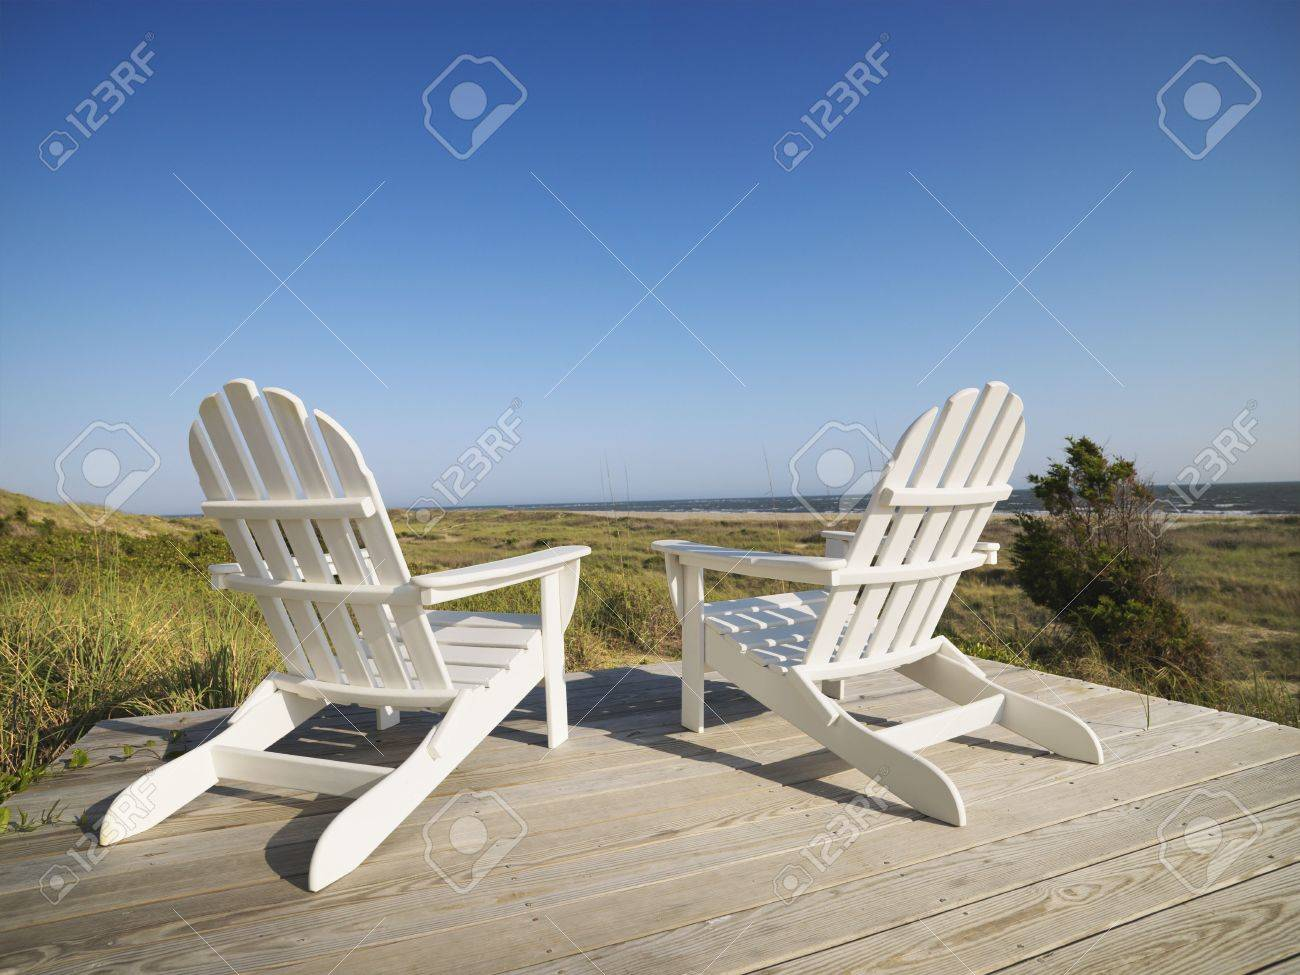 Stock Photo   Two Adirondack Chairs On Wooden Deck Overlooking Beach At  Bald Head Island, North Carolina.